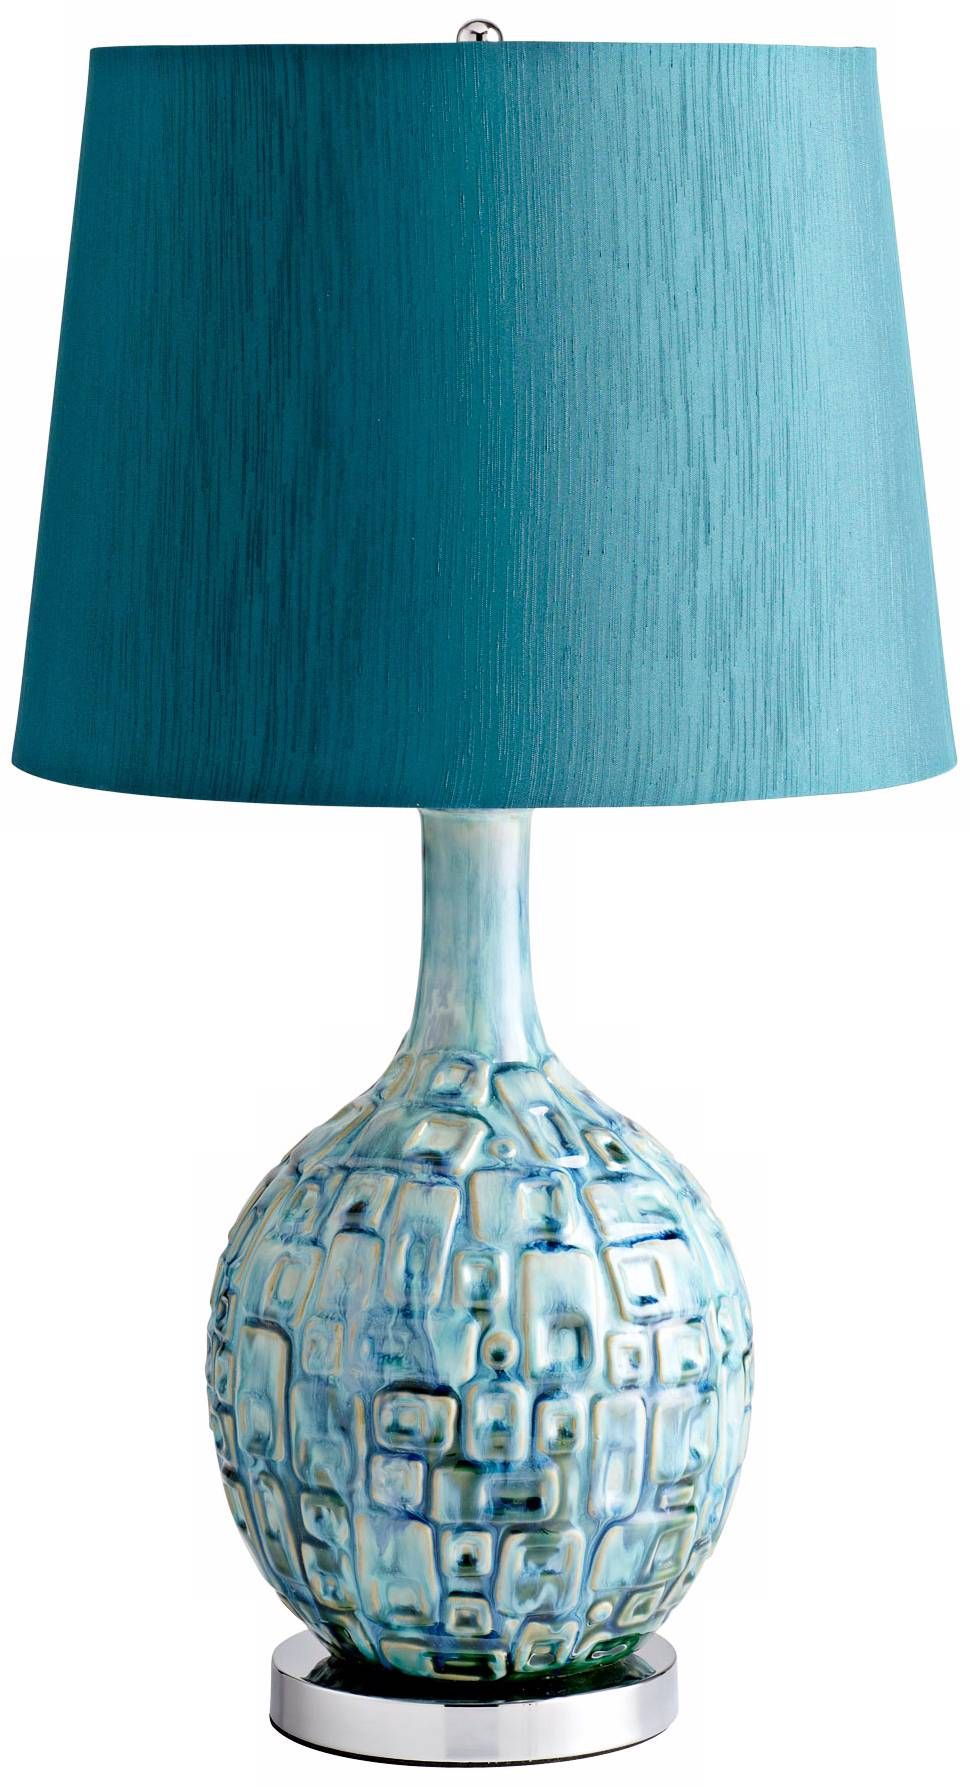 Jordan Ceramic Teal Table Lamp   #X6331 | Lamps Plus